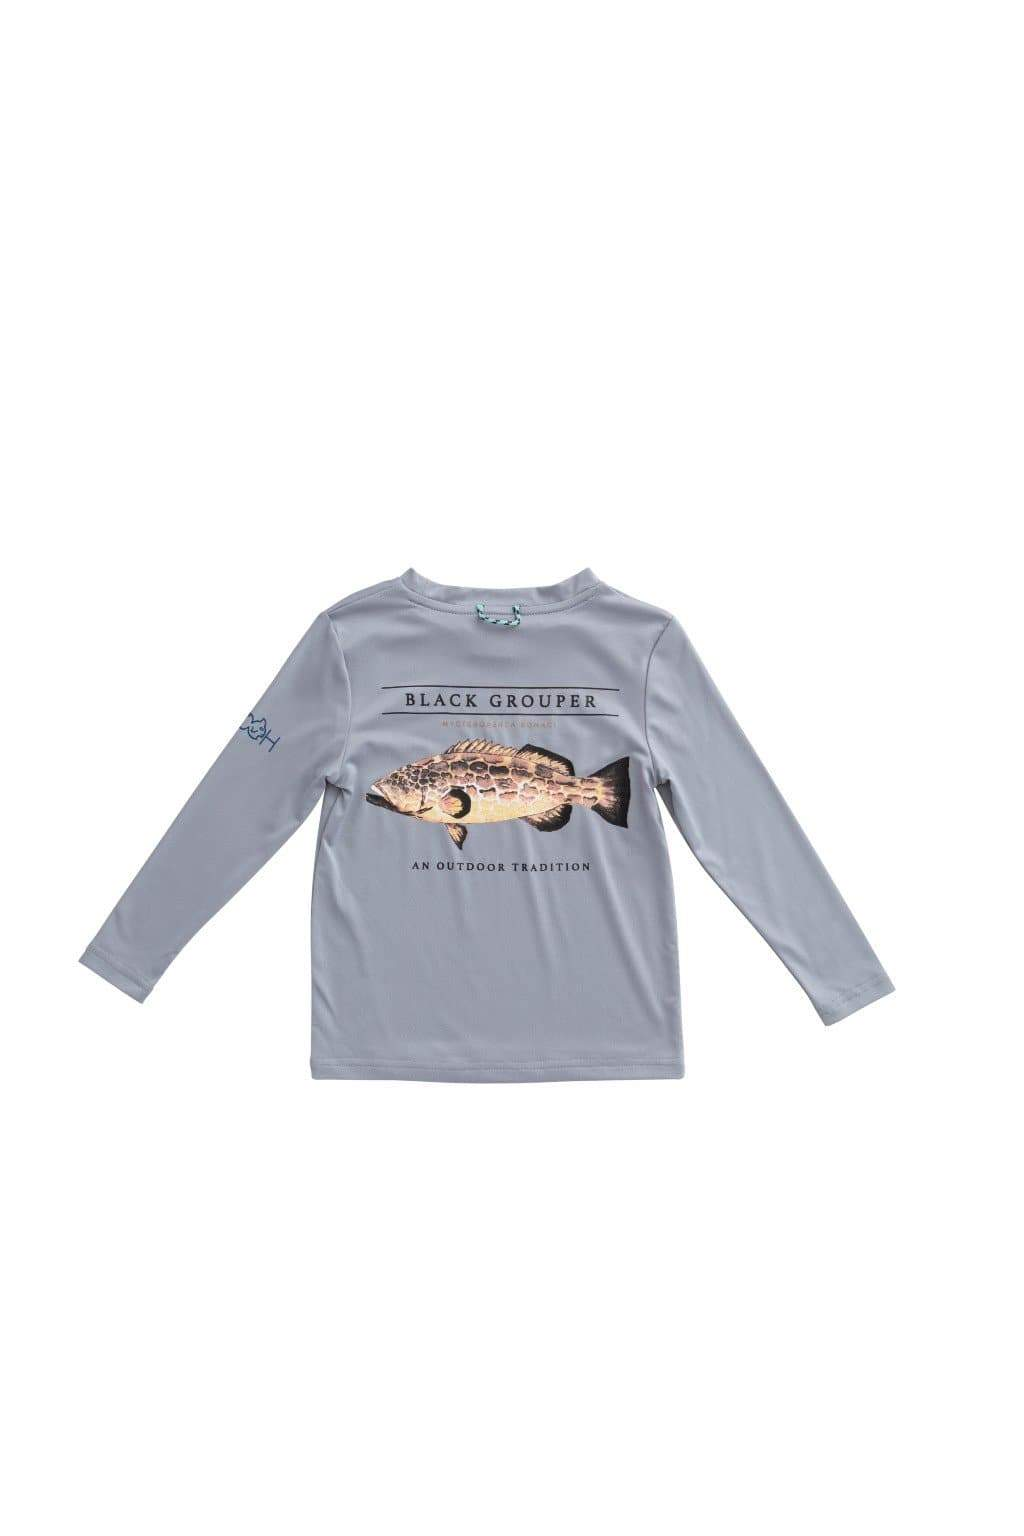 Prodoh Grouper Performance T-Shirt in Igneous Gray